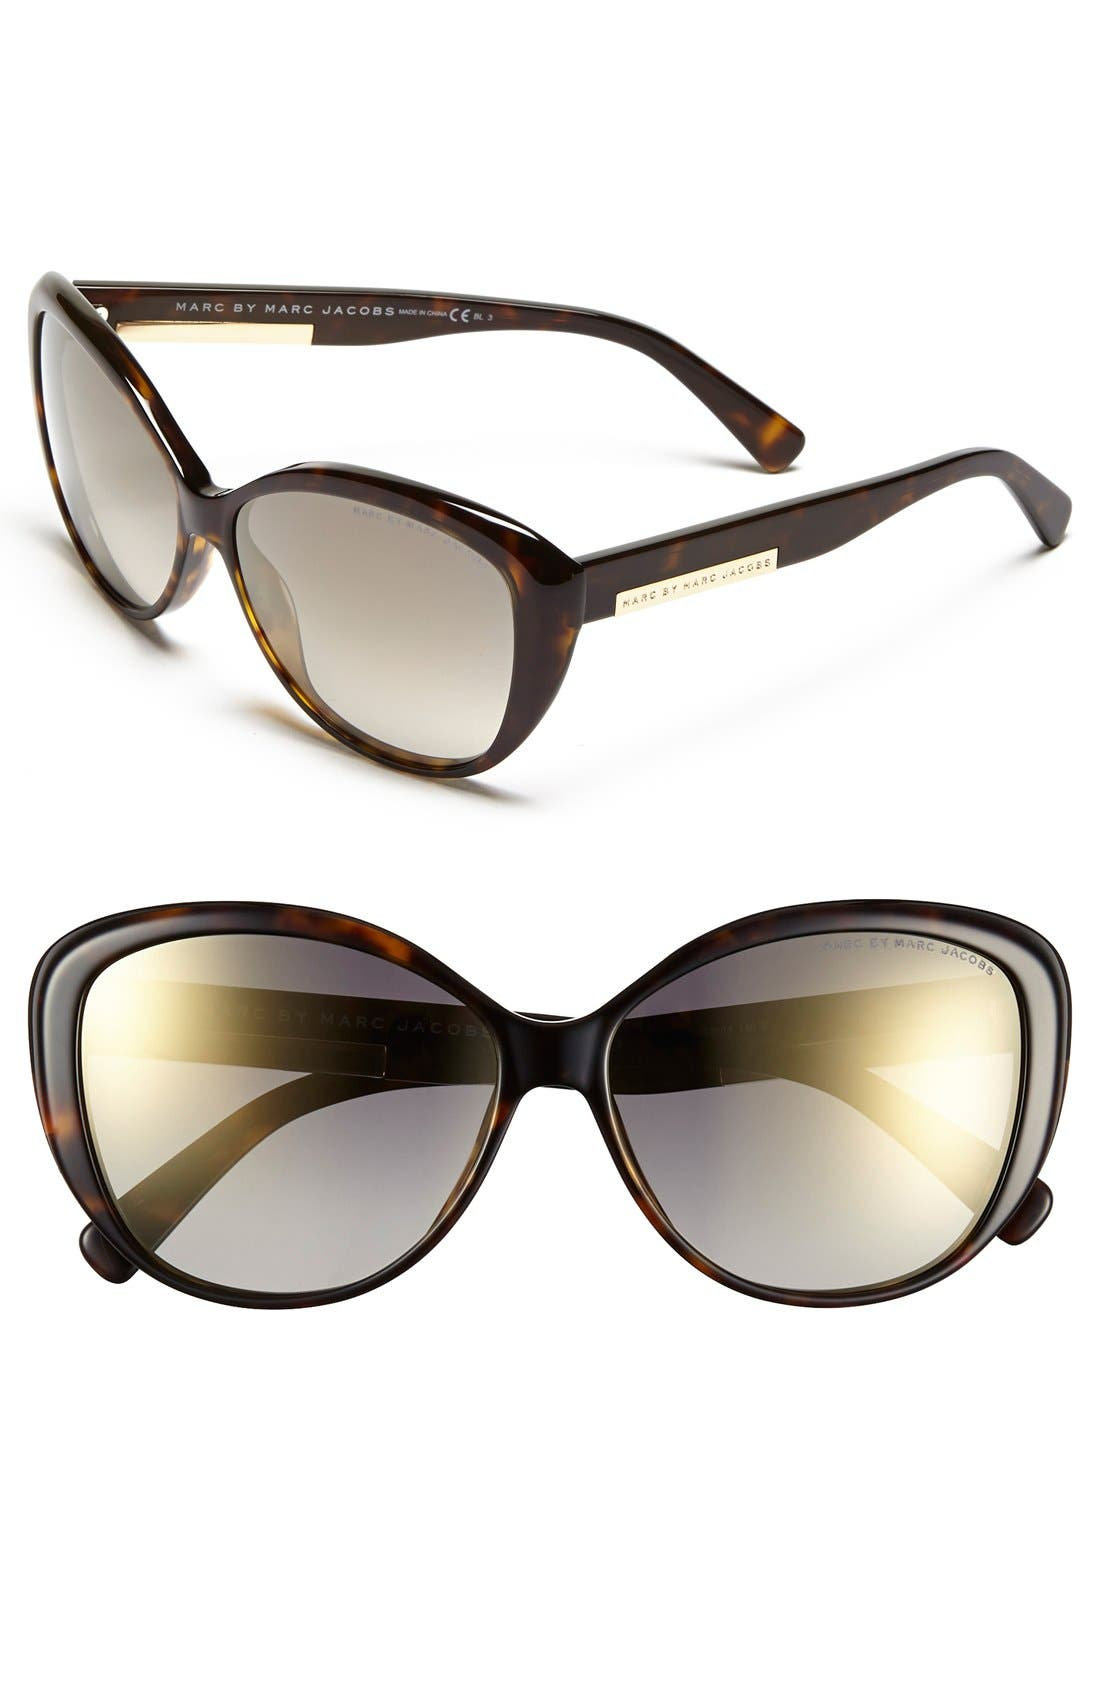 Main Image - MARC BY MARC JACOBS 58mm Retro Sunglasses (Nordstrom Exclusive)